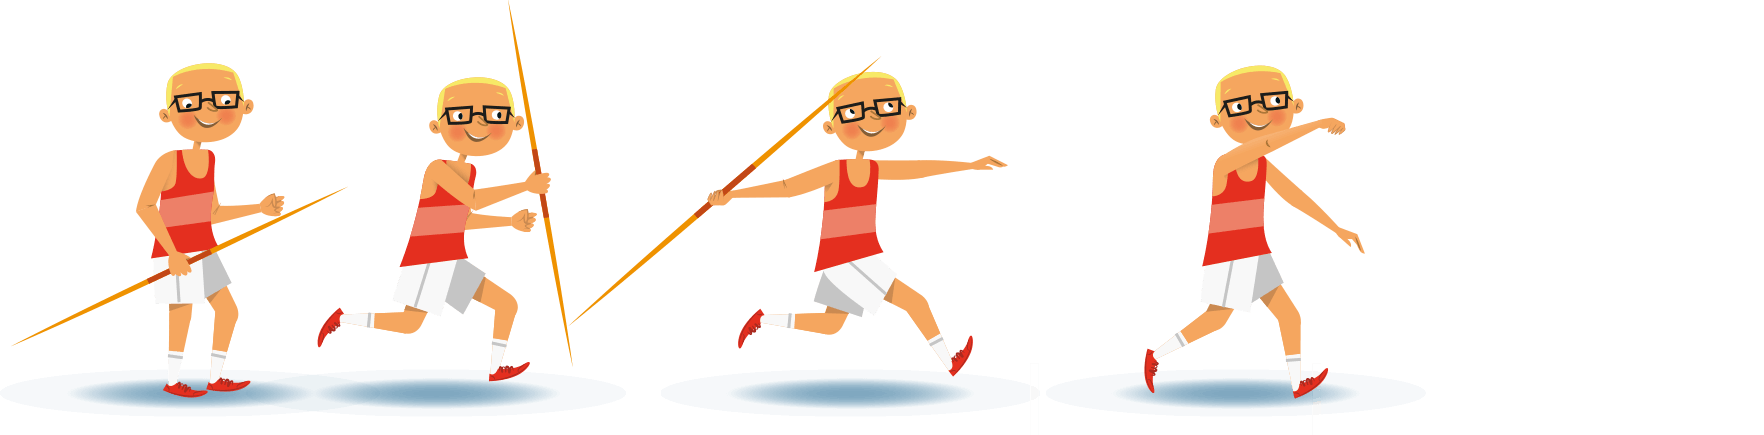 Friendly commonwealth for kids. Games clipart athletics games